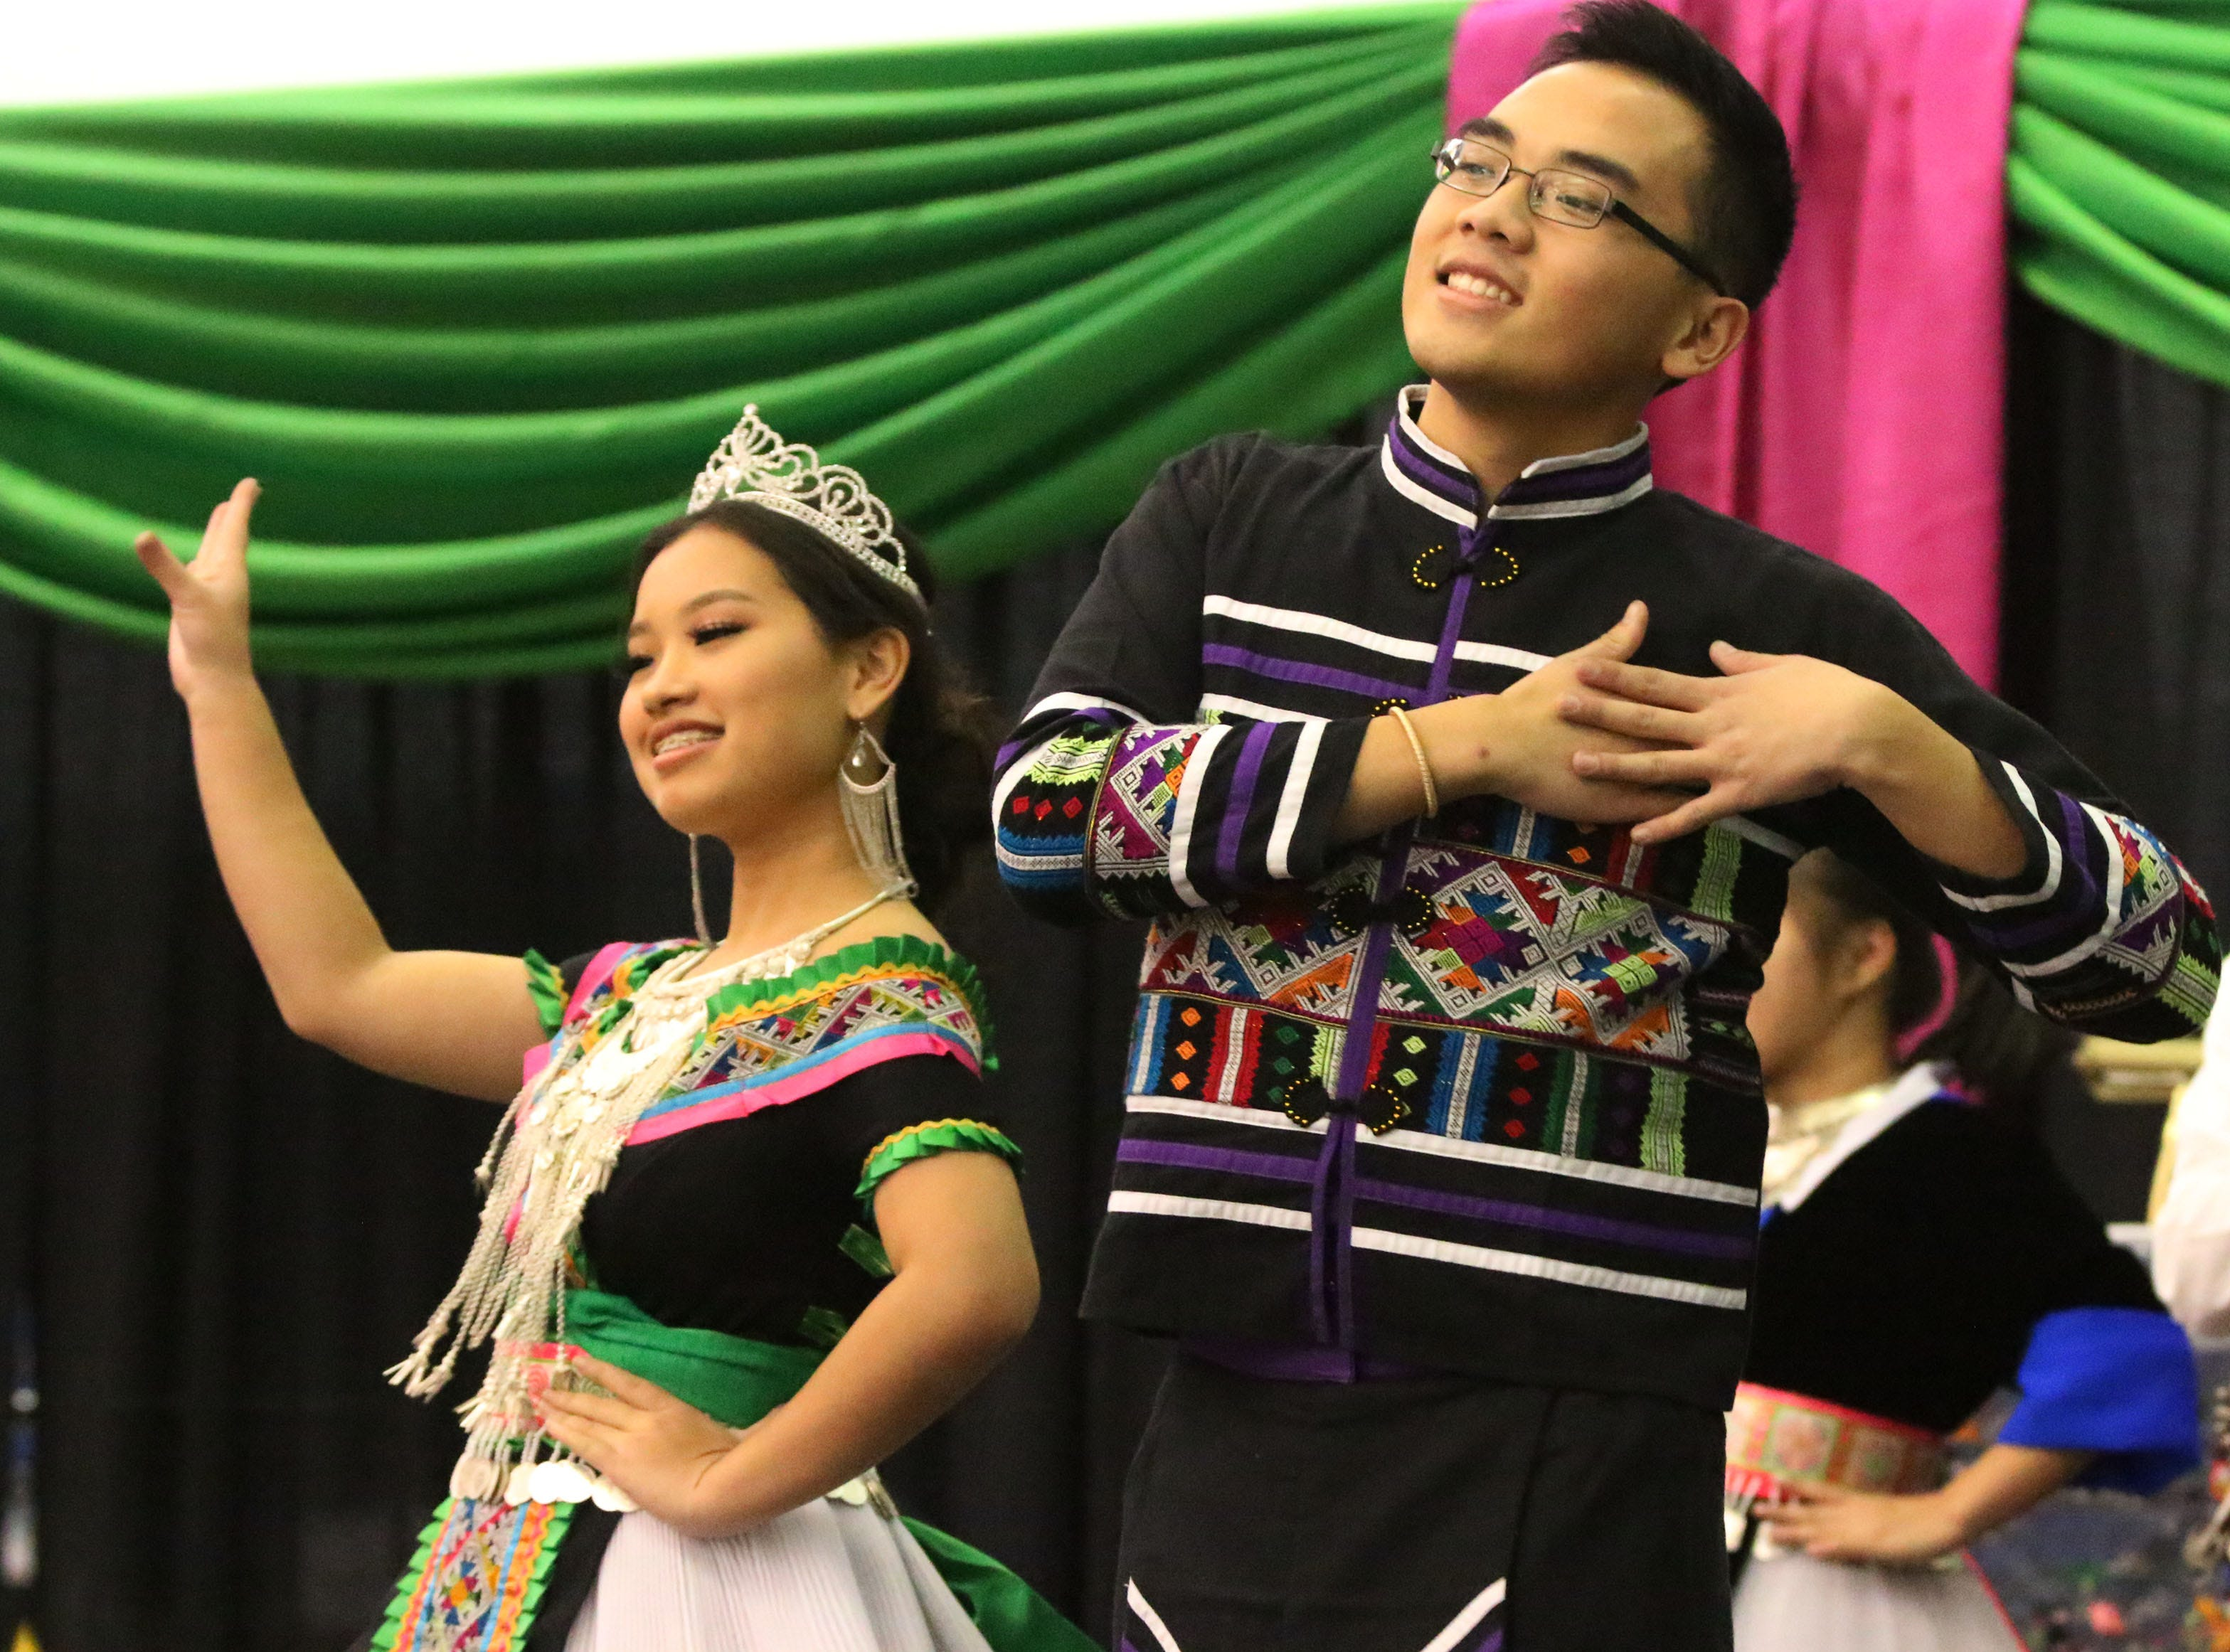 Hmong dancers gesture while dancing in competition during the Hmong New Year at Sheboygan North High School, Saturday, November 24, 2018, in Sheboygan, Wis.